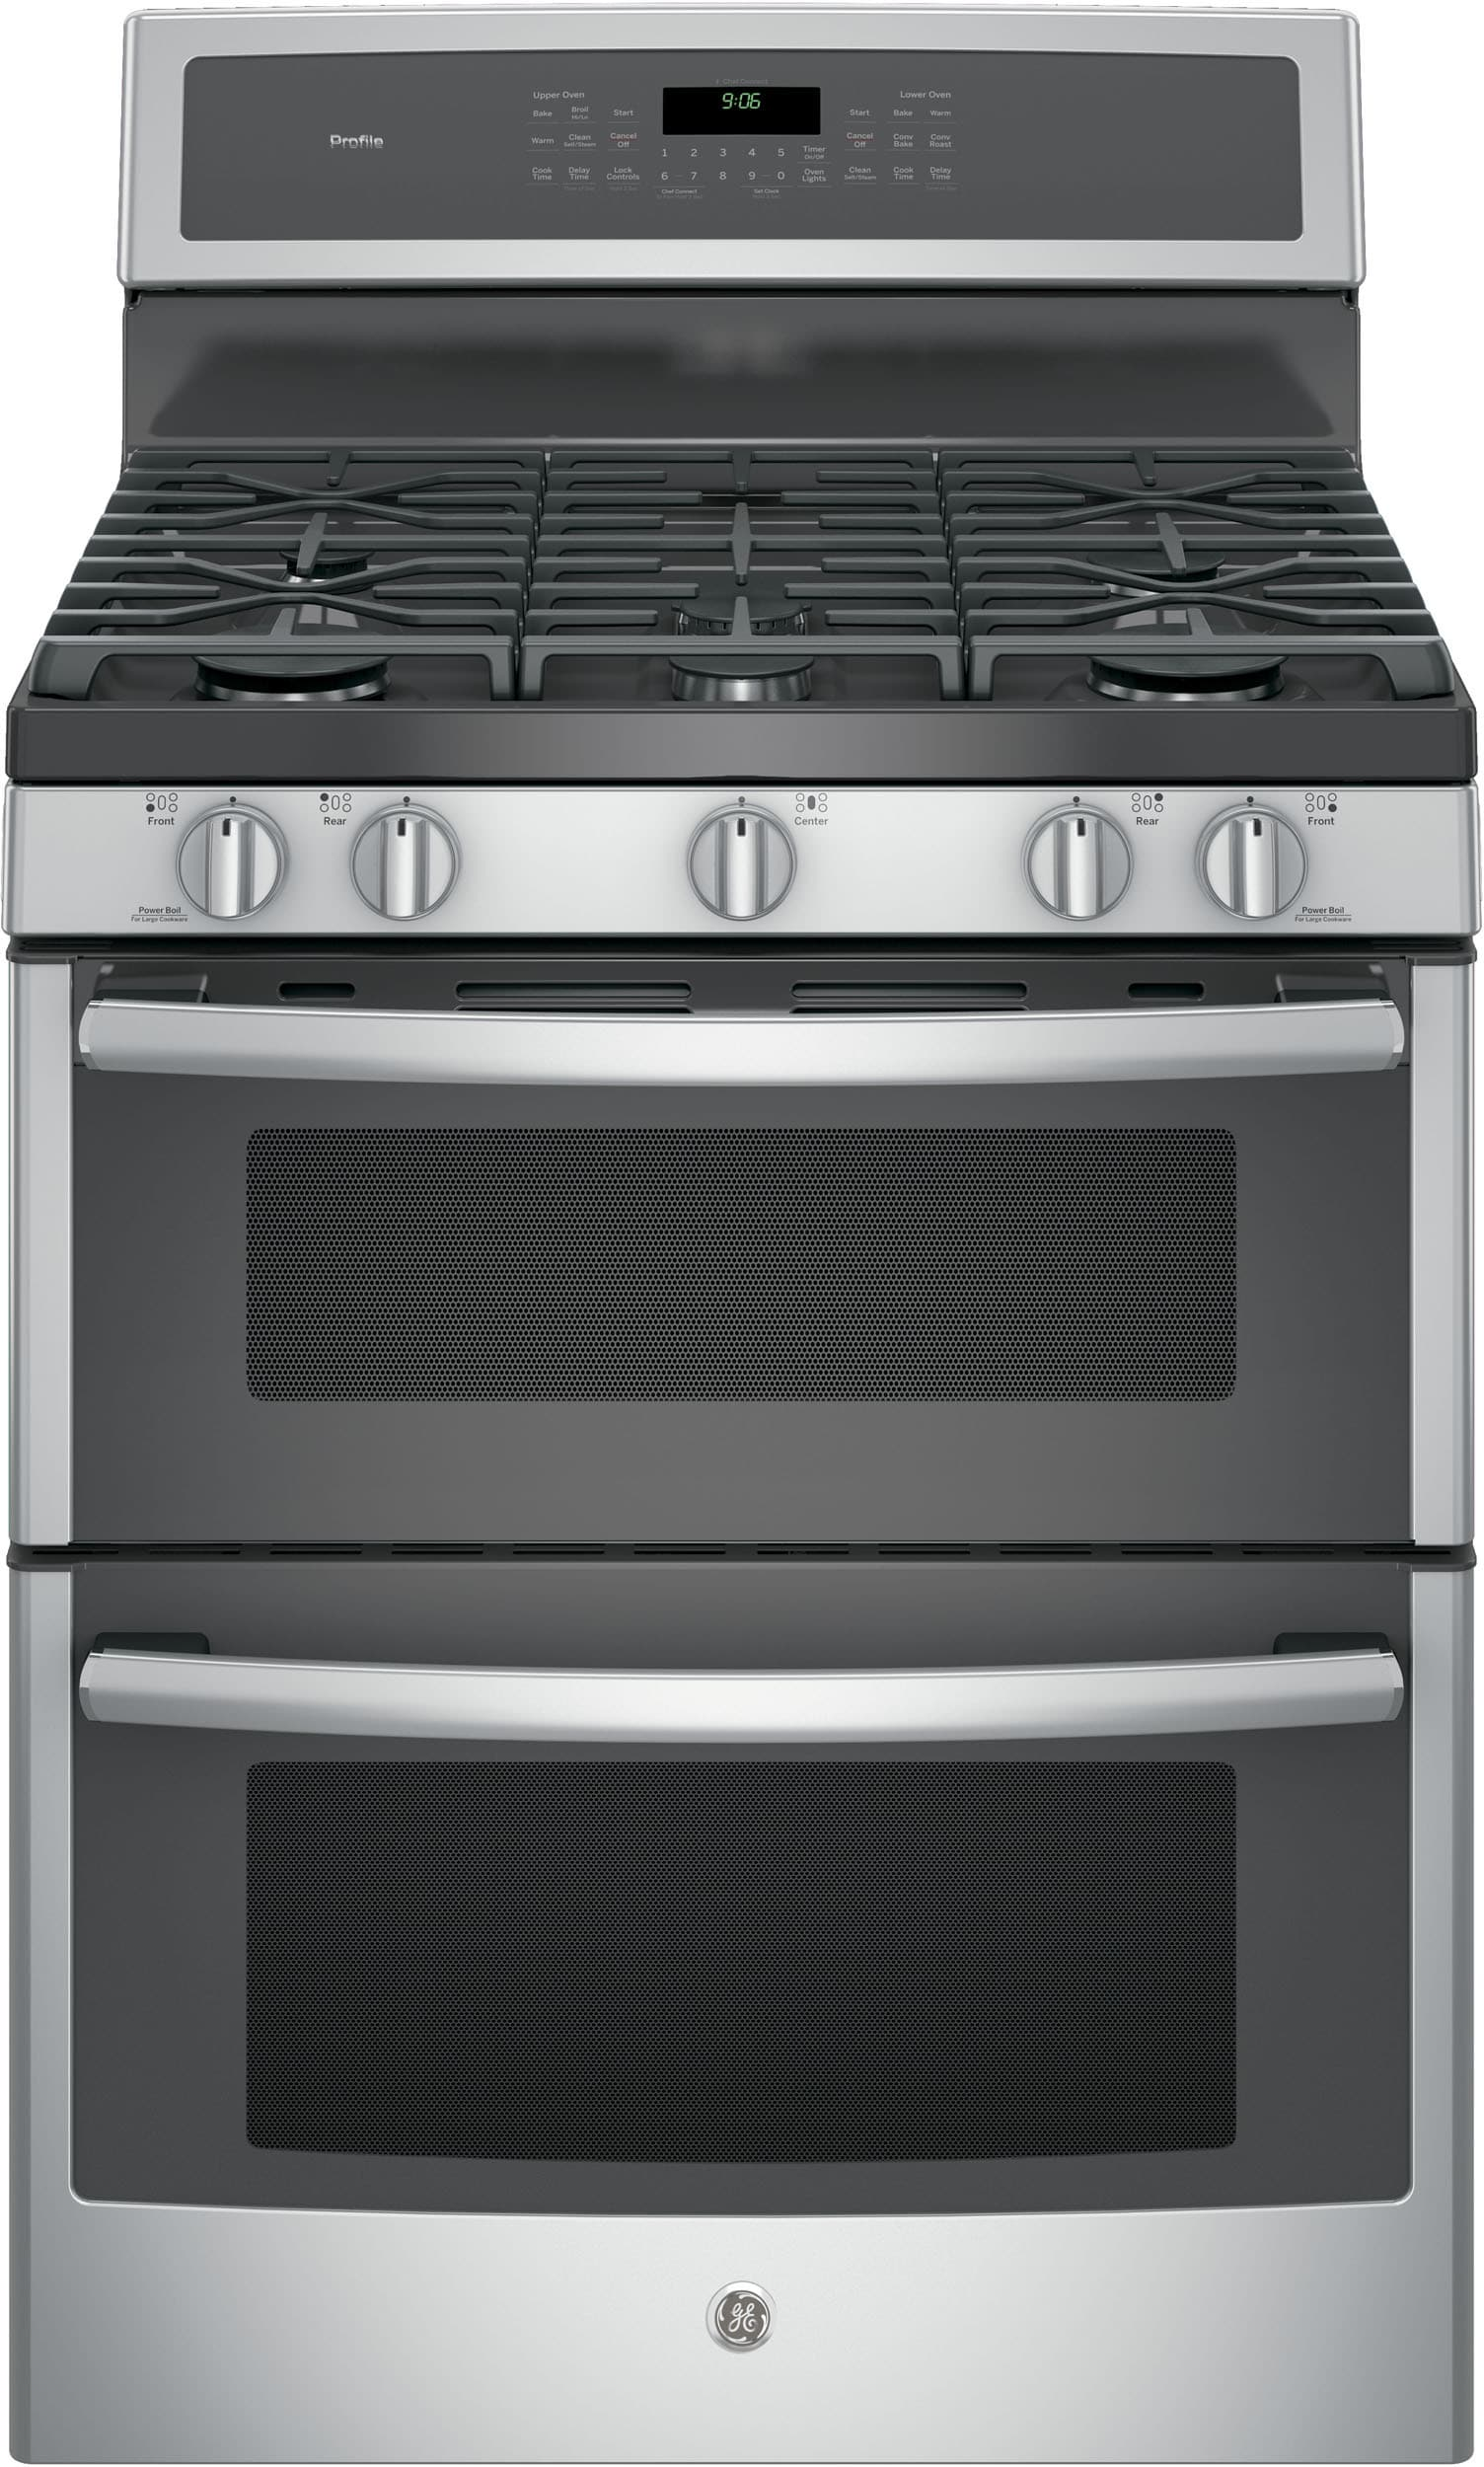 Ge Pgb960sejss 30 Inch Freestanding Double Oven Gas Range